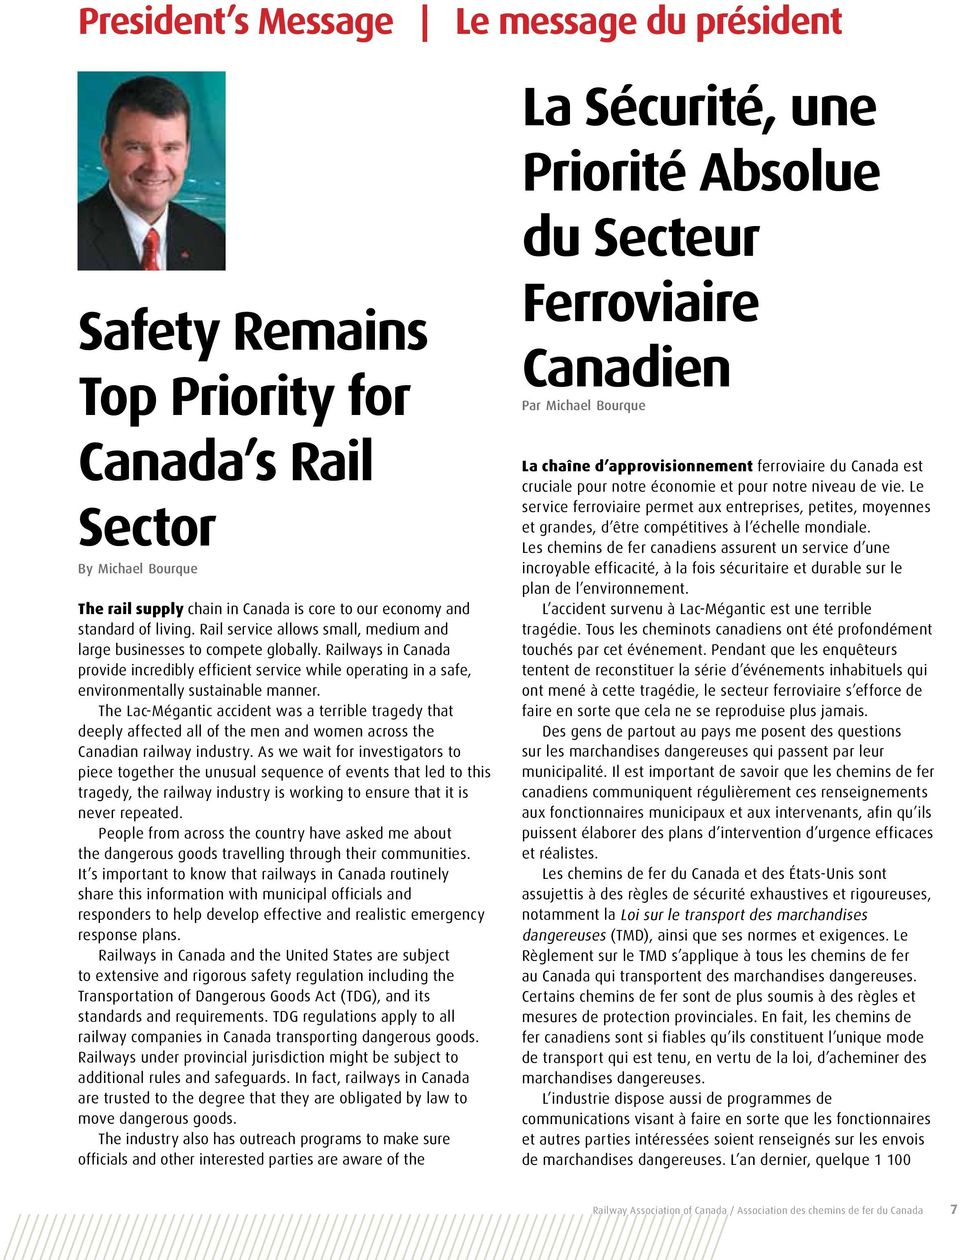 The Lac-Mégantic accident was a terrible tragedy that deeply affected all of the men and women across the Canadian railway industry.